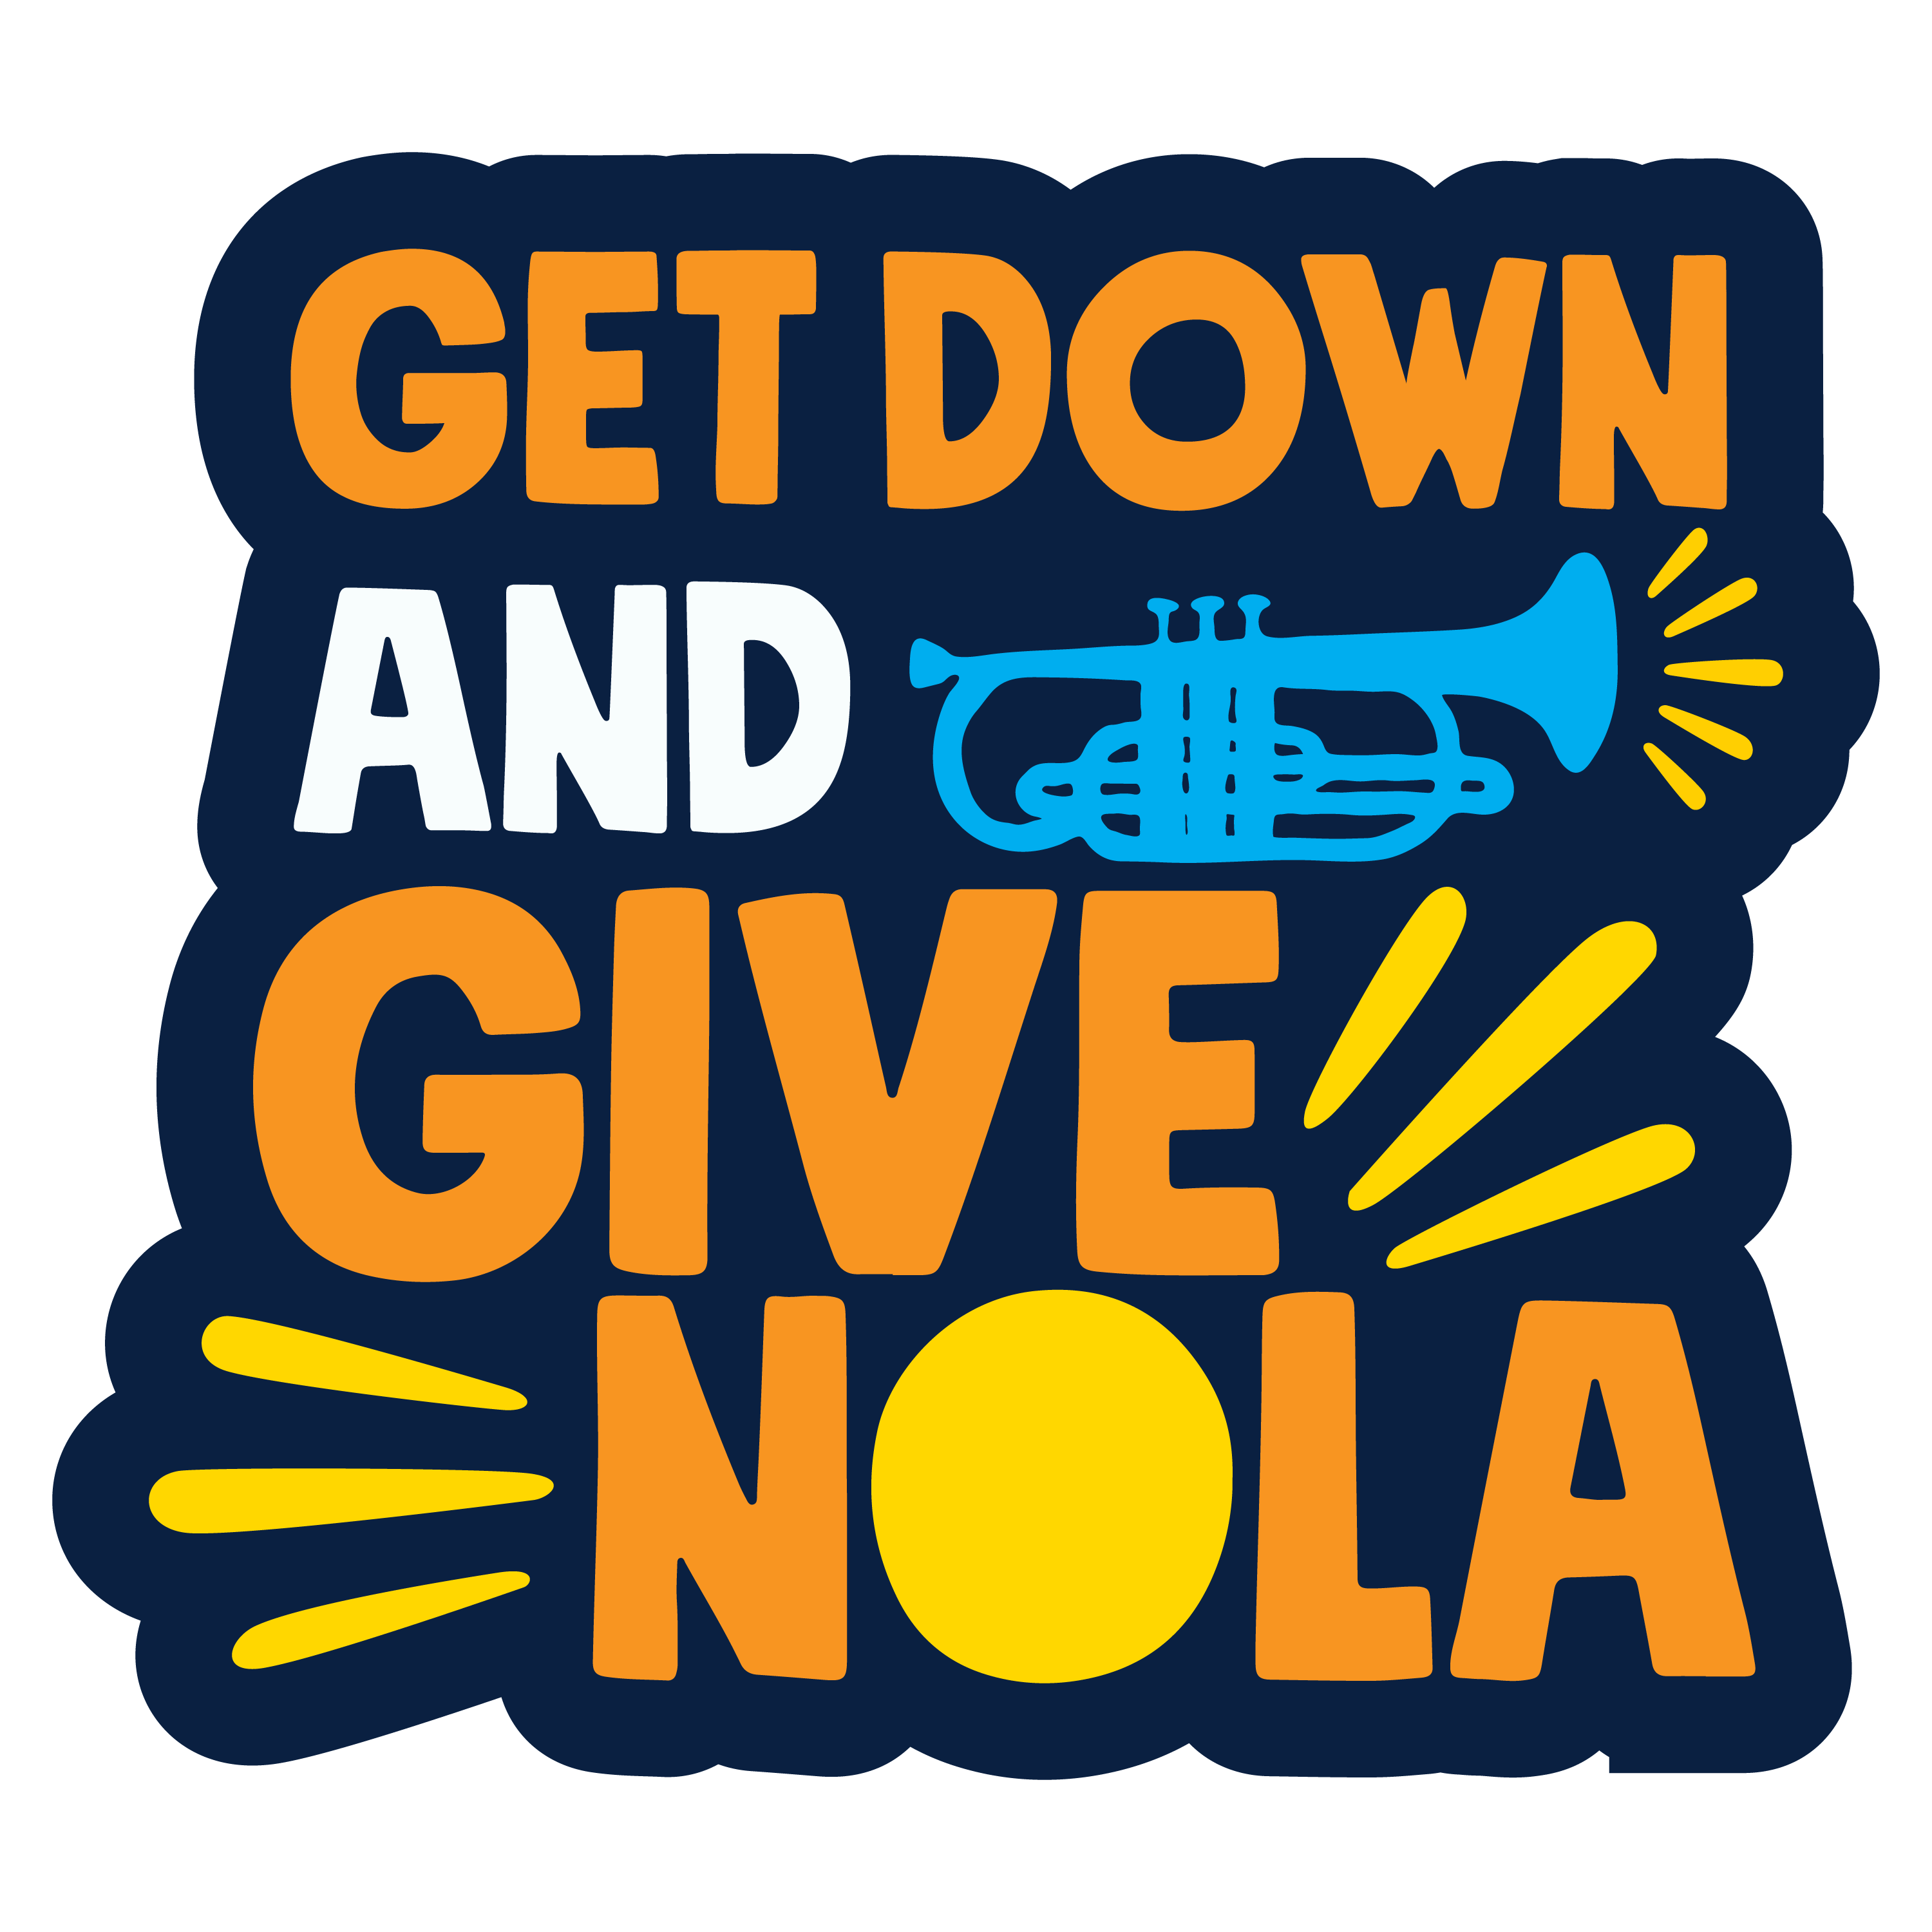 Give NOLA Day, Get Down and Give NOLA